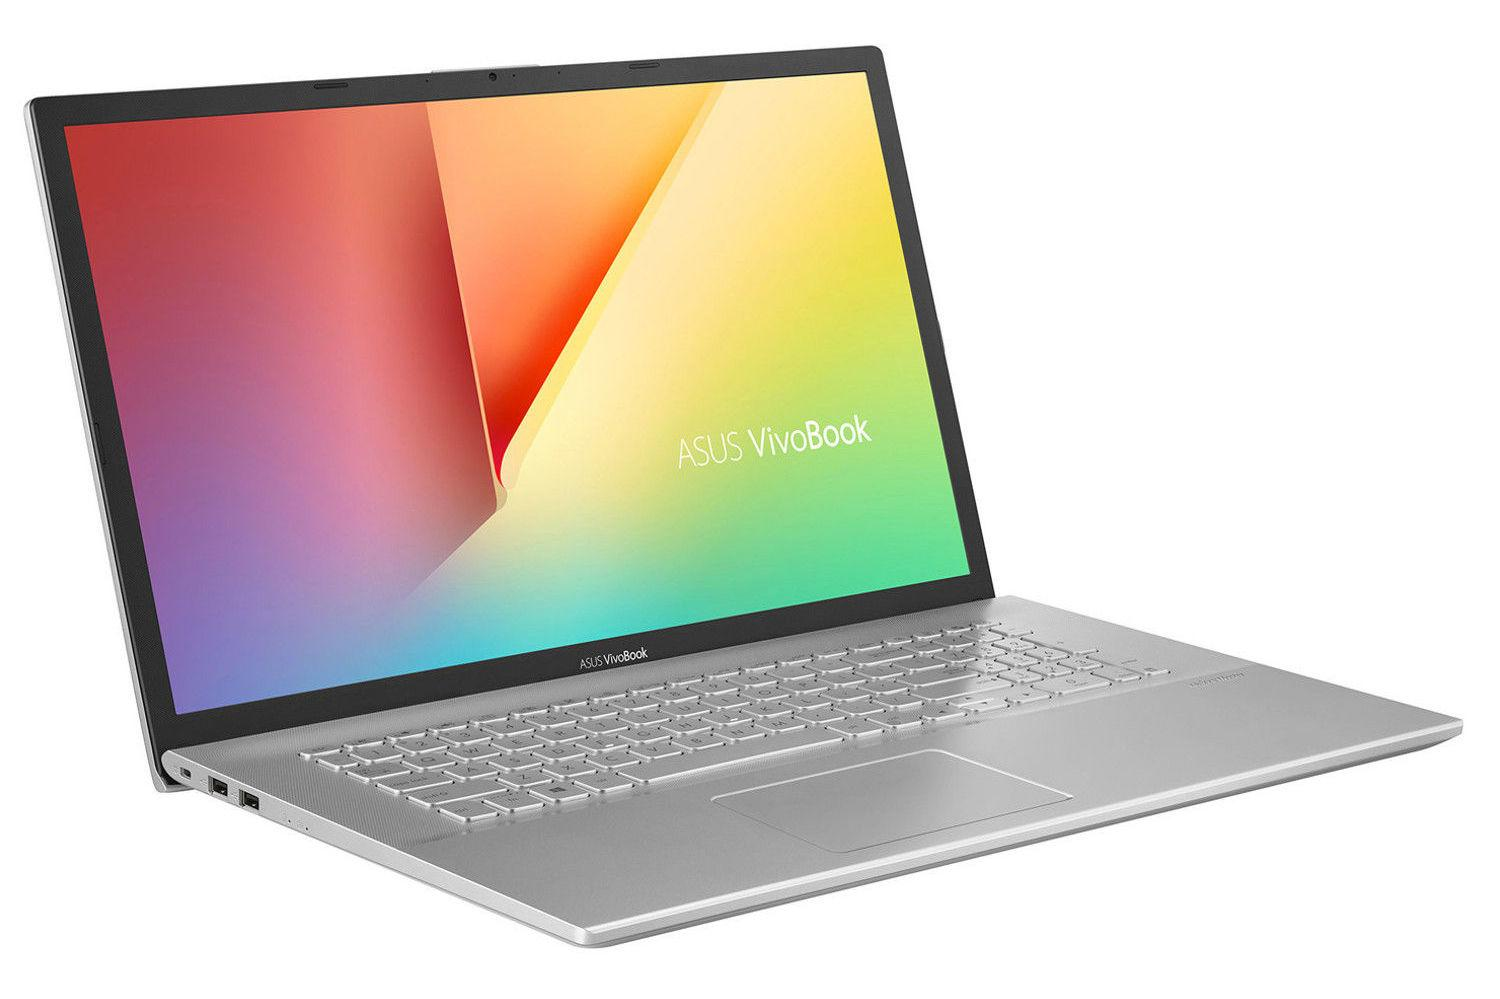 Ordinateur portable Asus VivoBook X712FB-AU168T Argent - SSD 512 Go, MX110 - photo 1